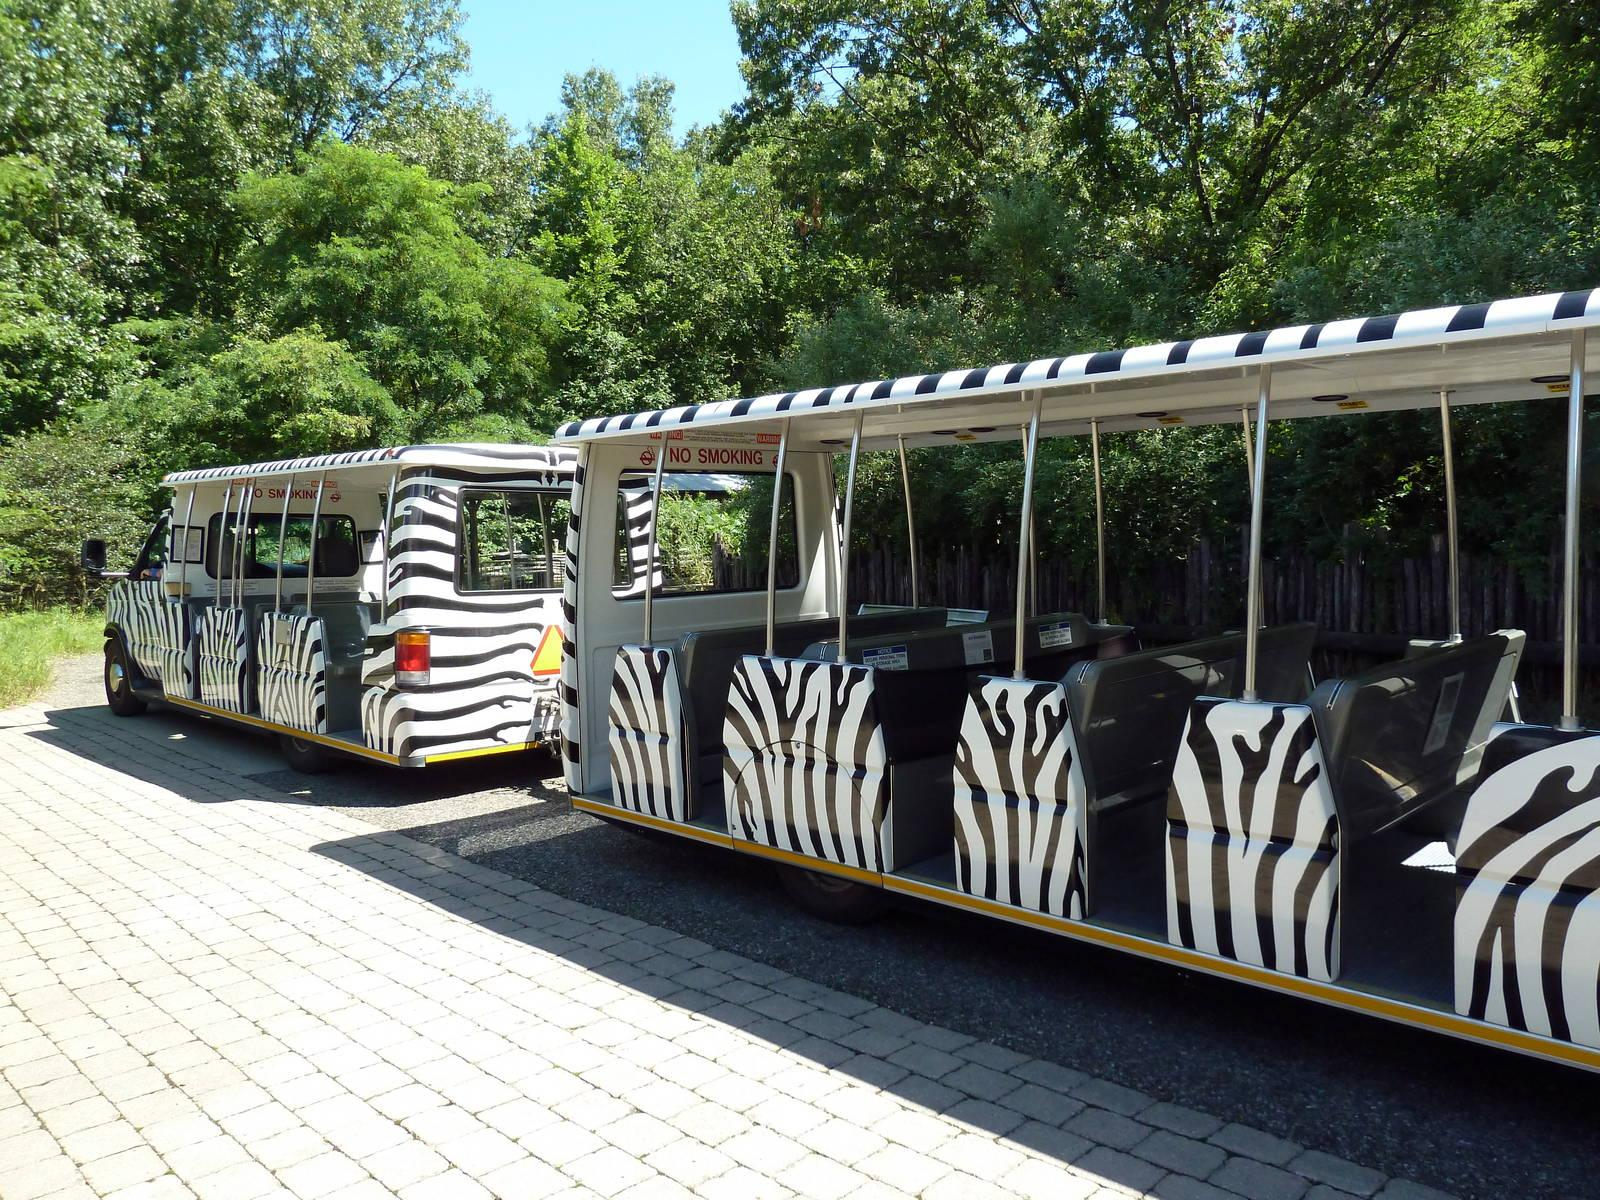 A rendering of the new passenger tram in the works for the first phase of Seneca Park Zoo's master renovation plan. (Photo: Monroe County)